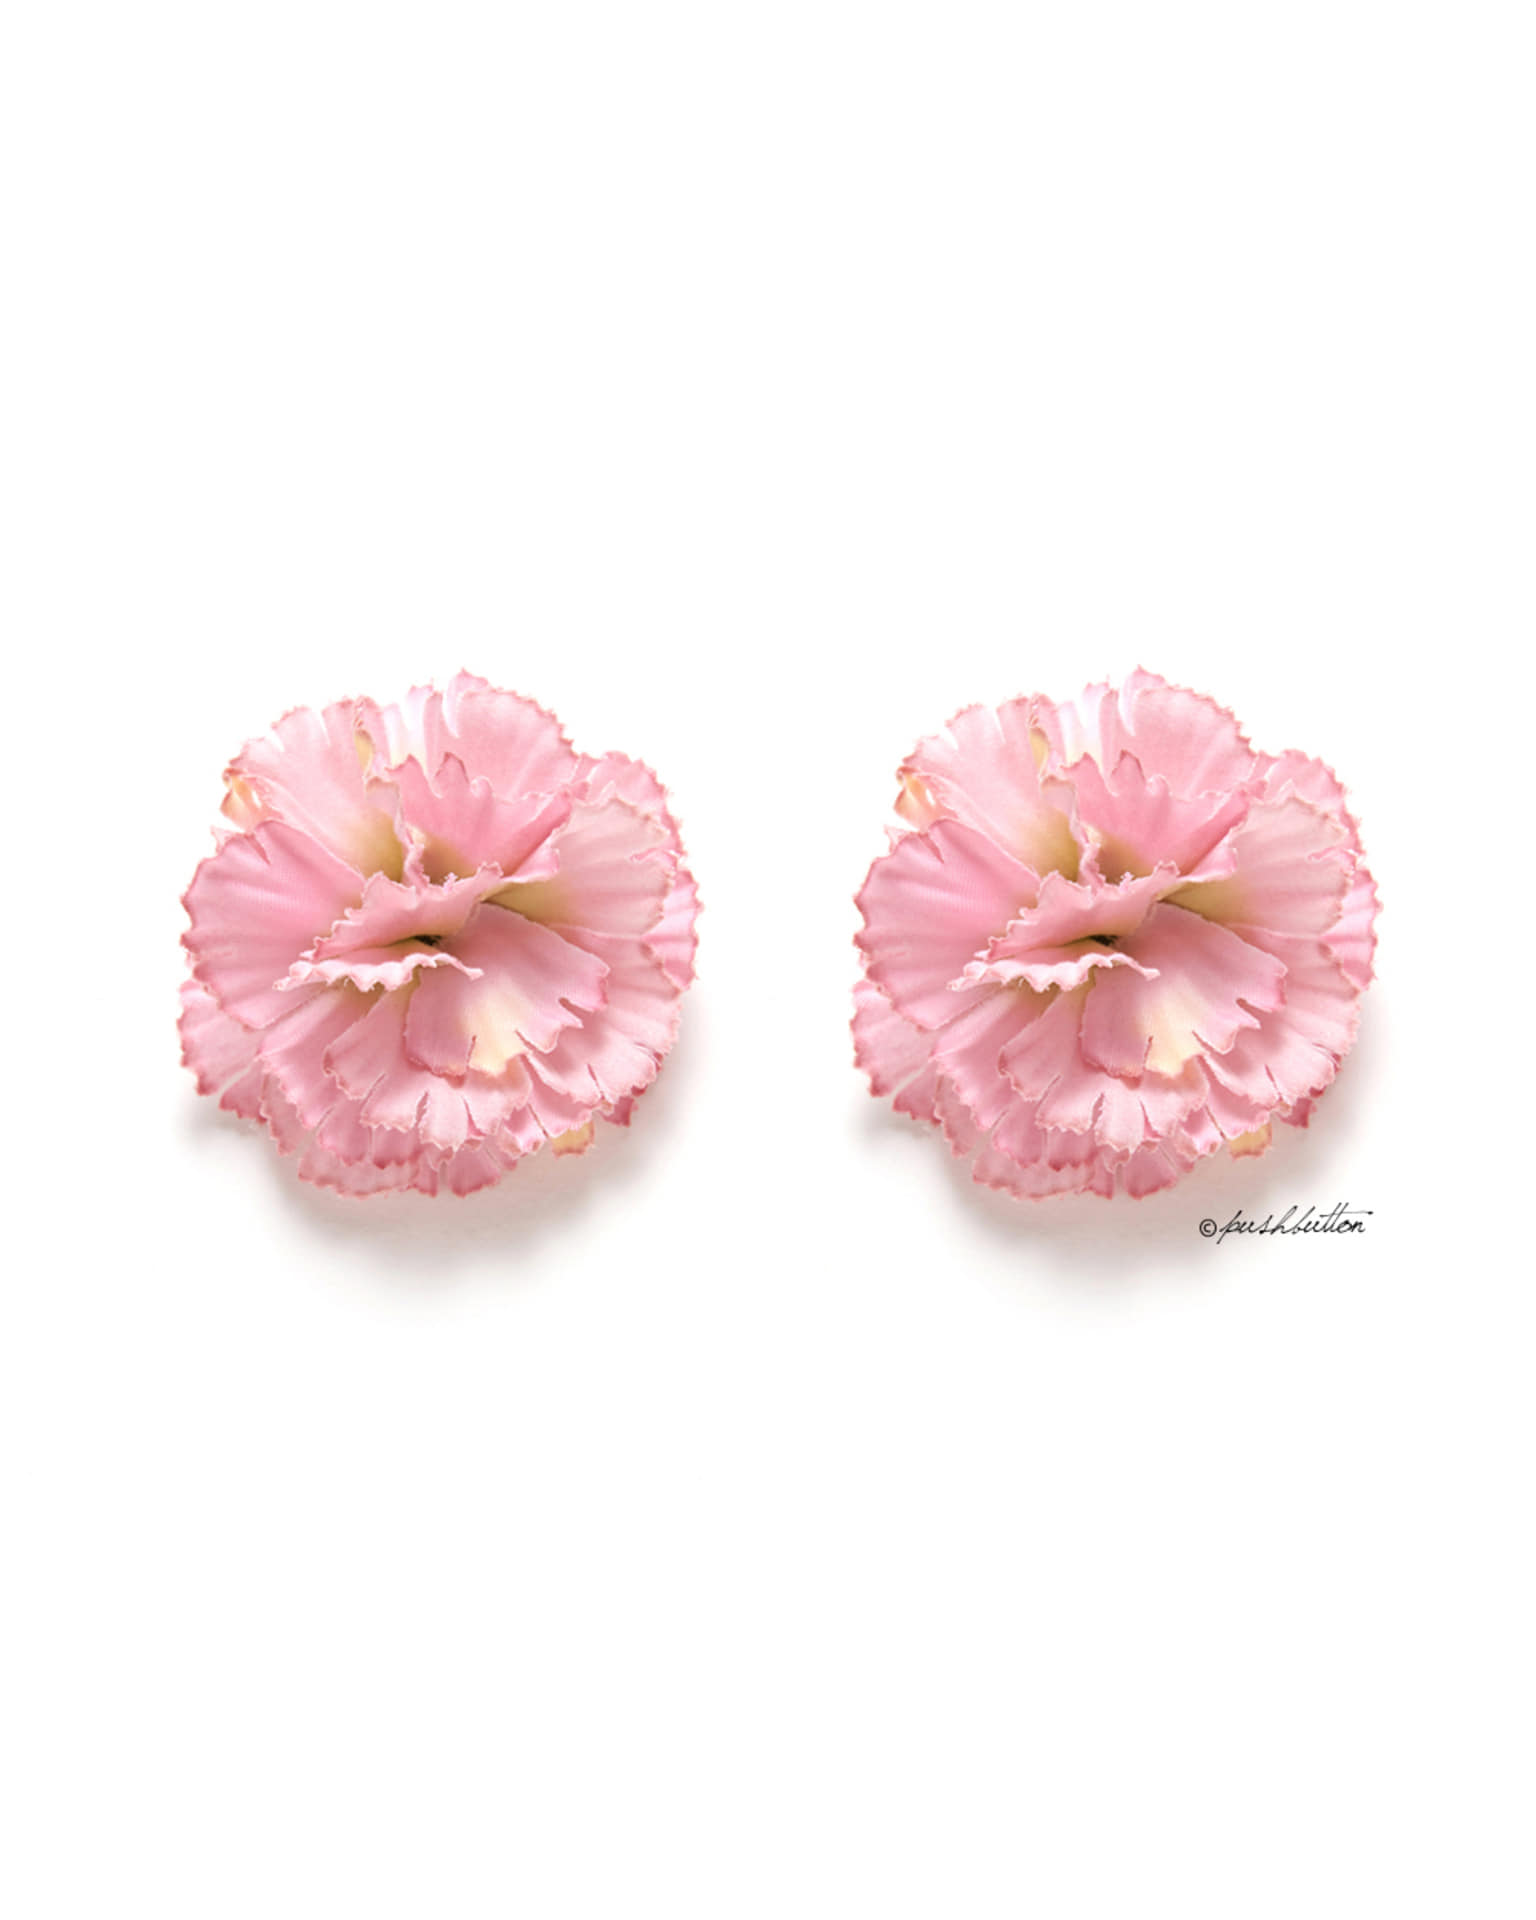 PINK CARNATION EARRING